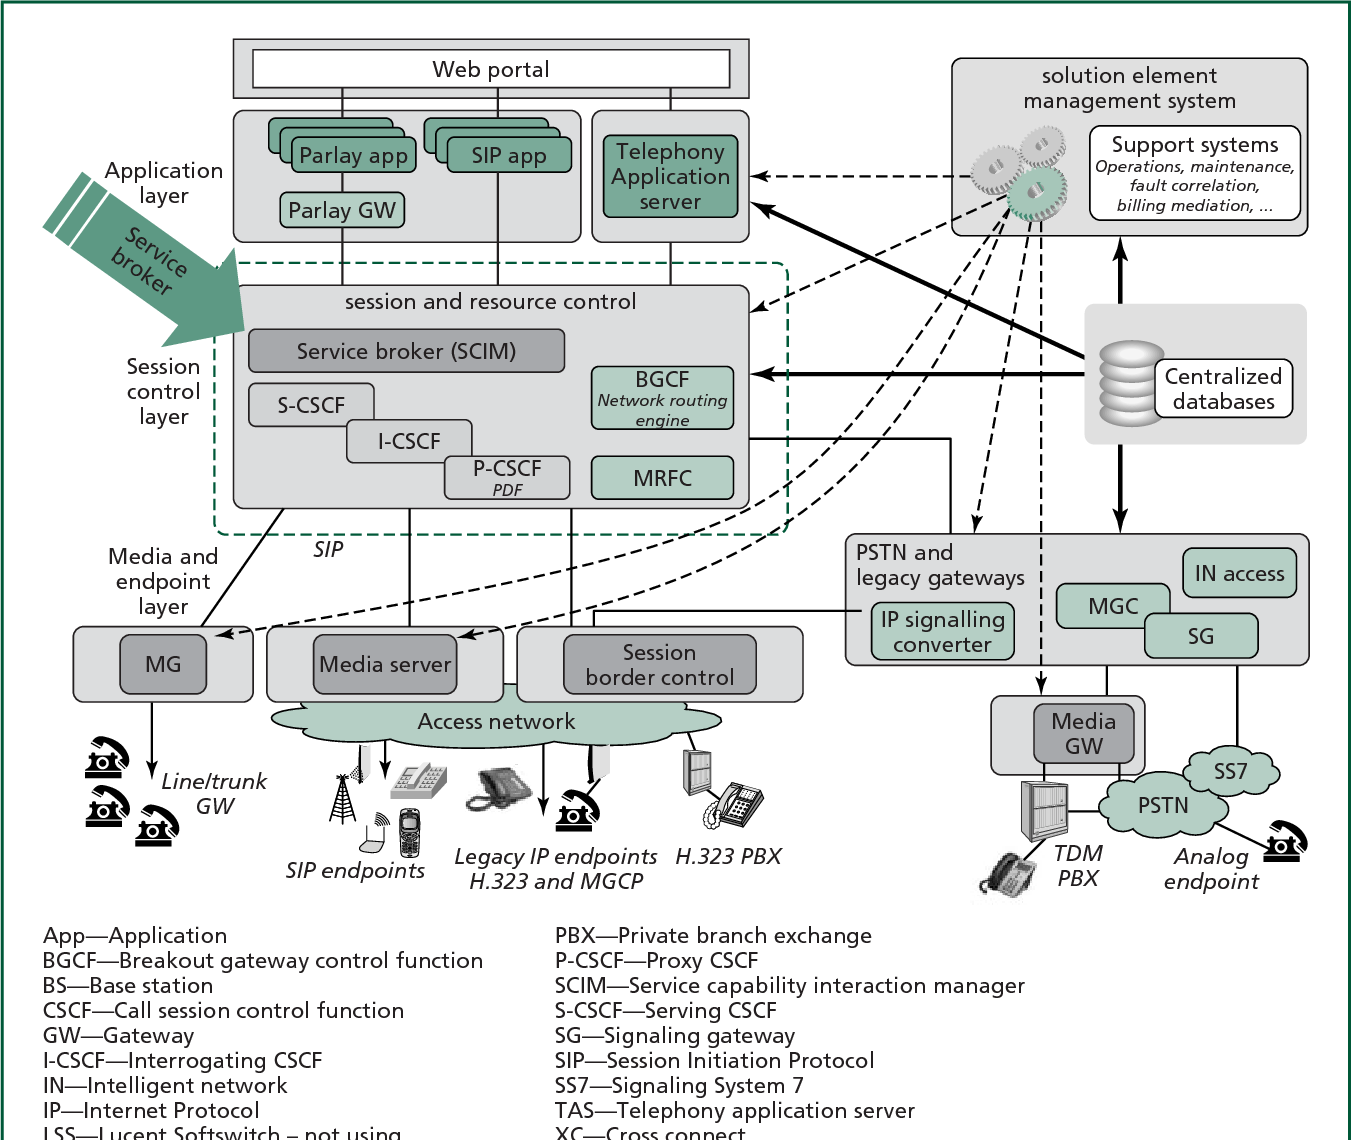 Figure 2. IP Multimedia Subsystem architecture with service broker.